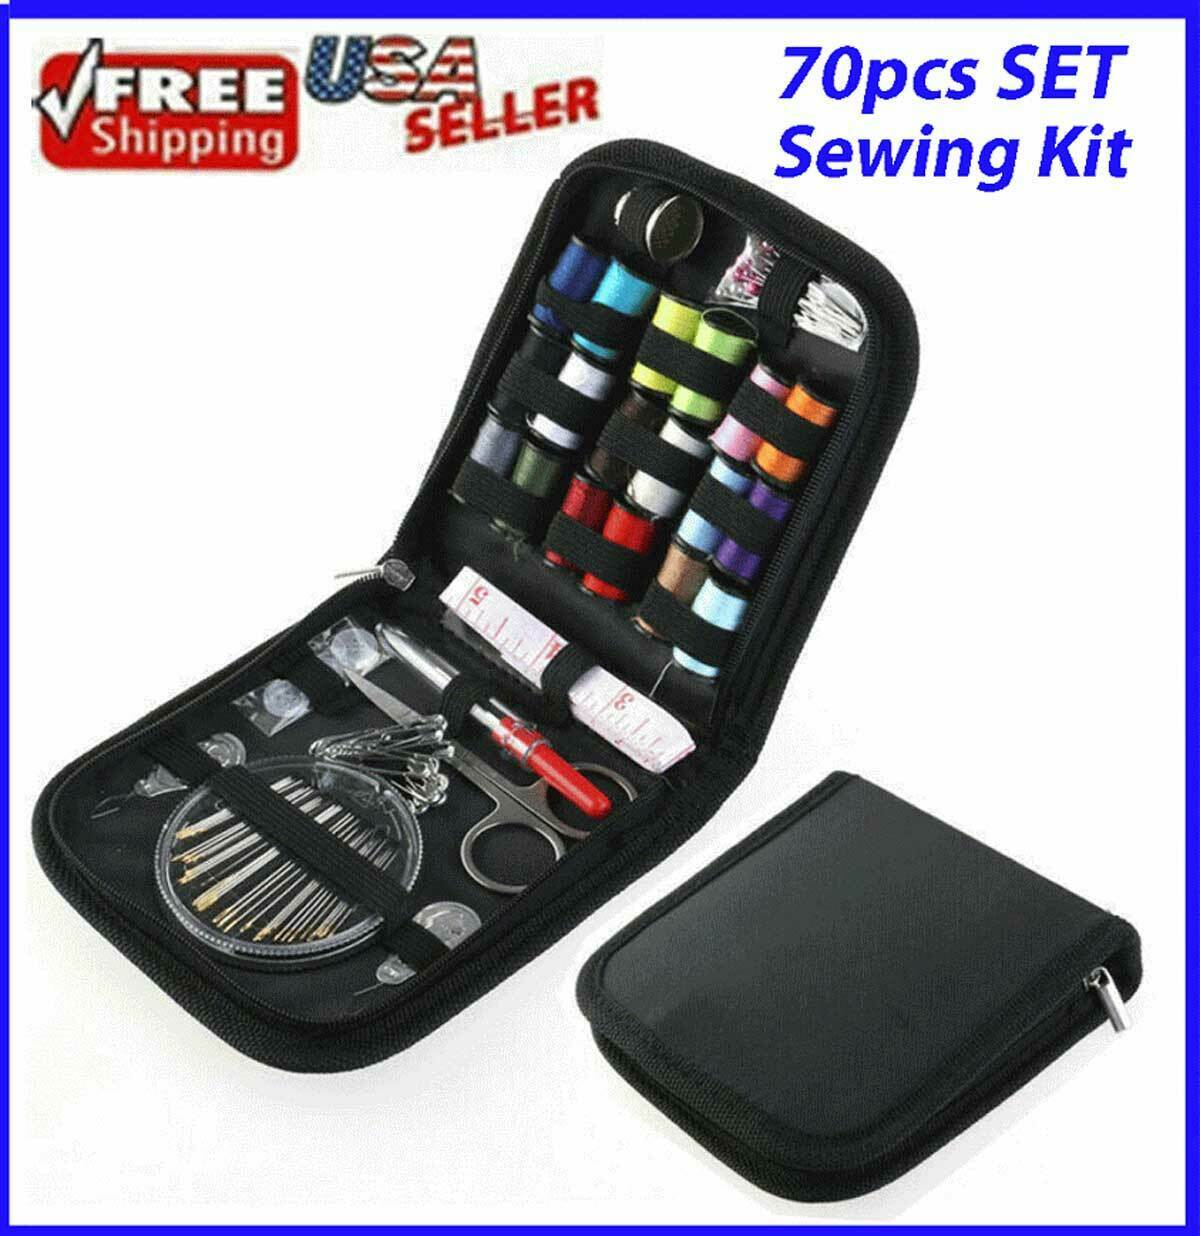 70pcs Sewing Kit Thread Threader Needle Tape Measure Scissor Thimble Home Travel Collectibles